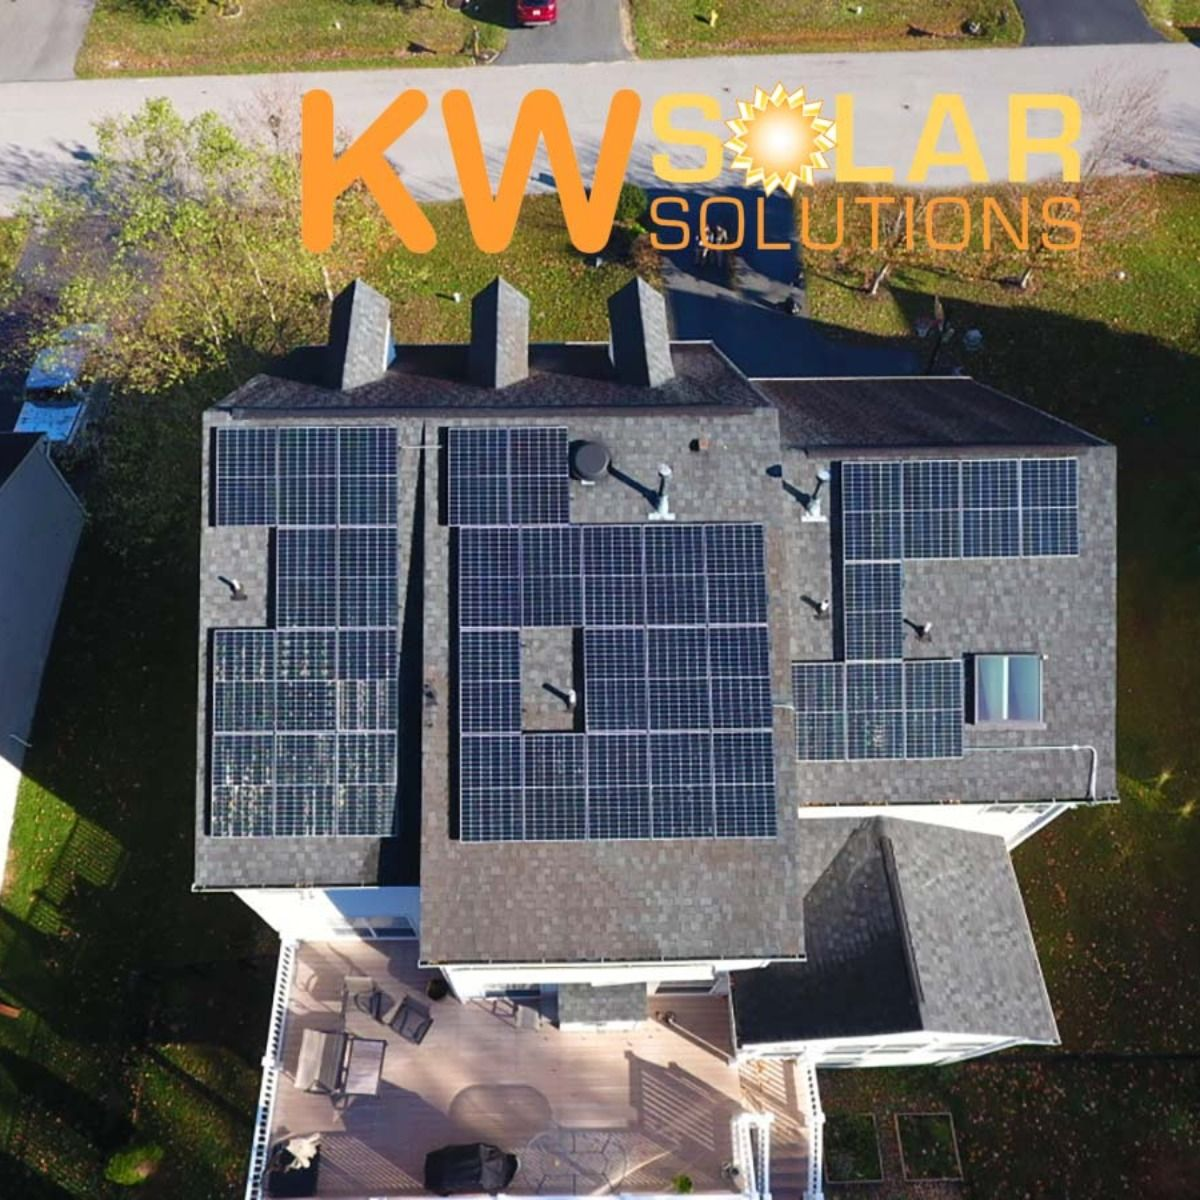 Residential Solar Pv Rooftop Energy System Installation In 2020 Residential Solar Panels Solar Panels For Sale Solar Panel Installation